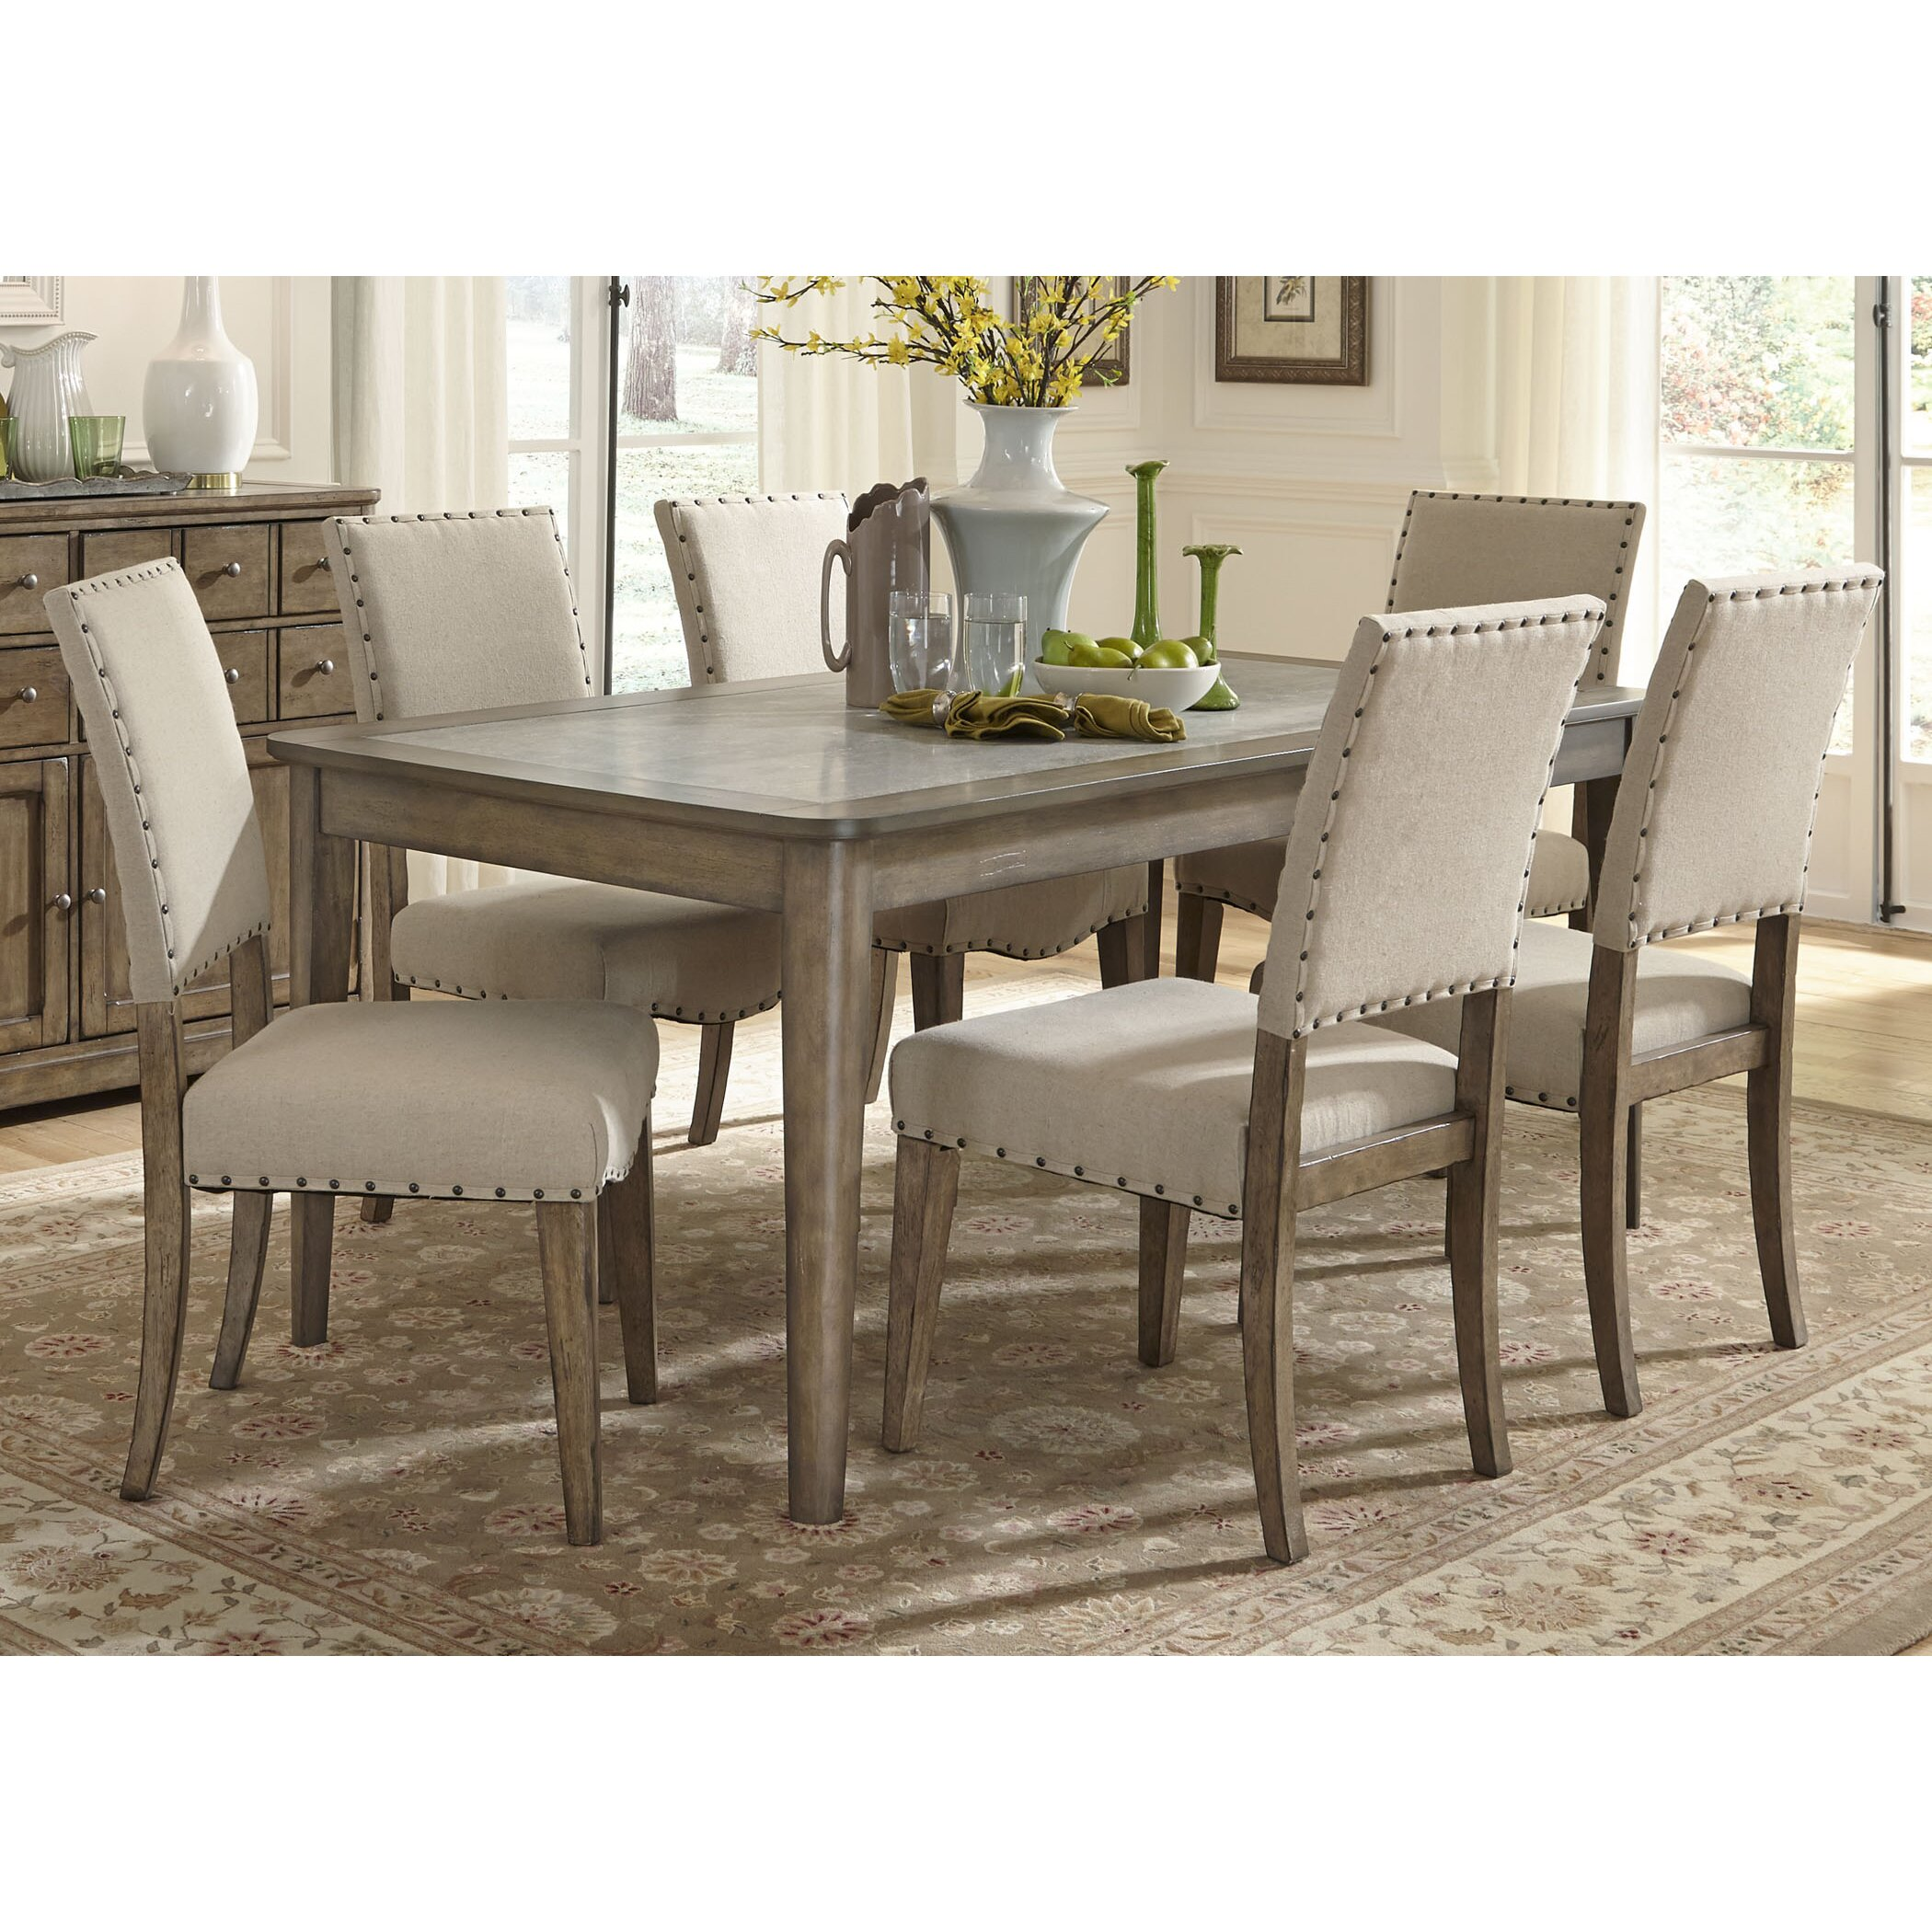 Liberty furniture 7 piece dining set reviews wayfair for Breakfast sets furniture